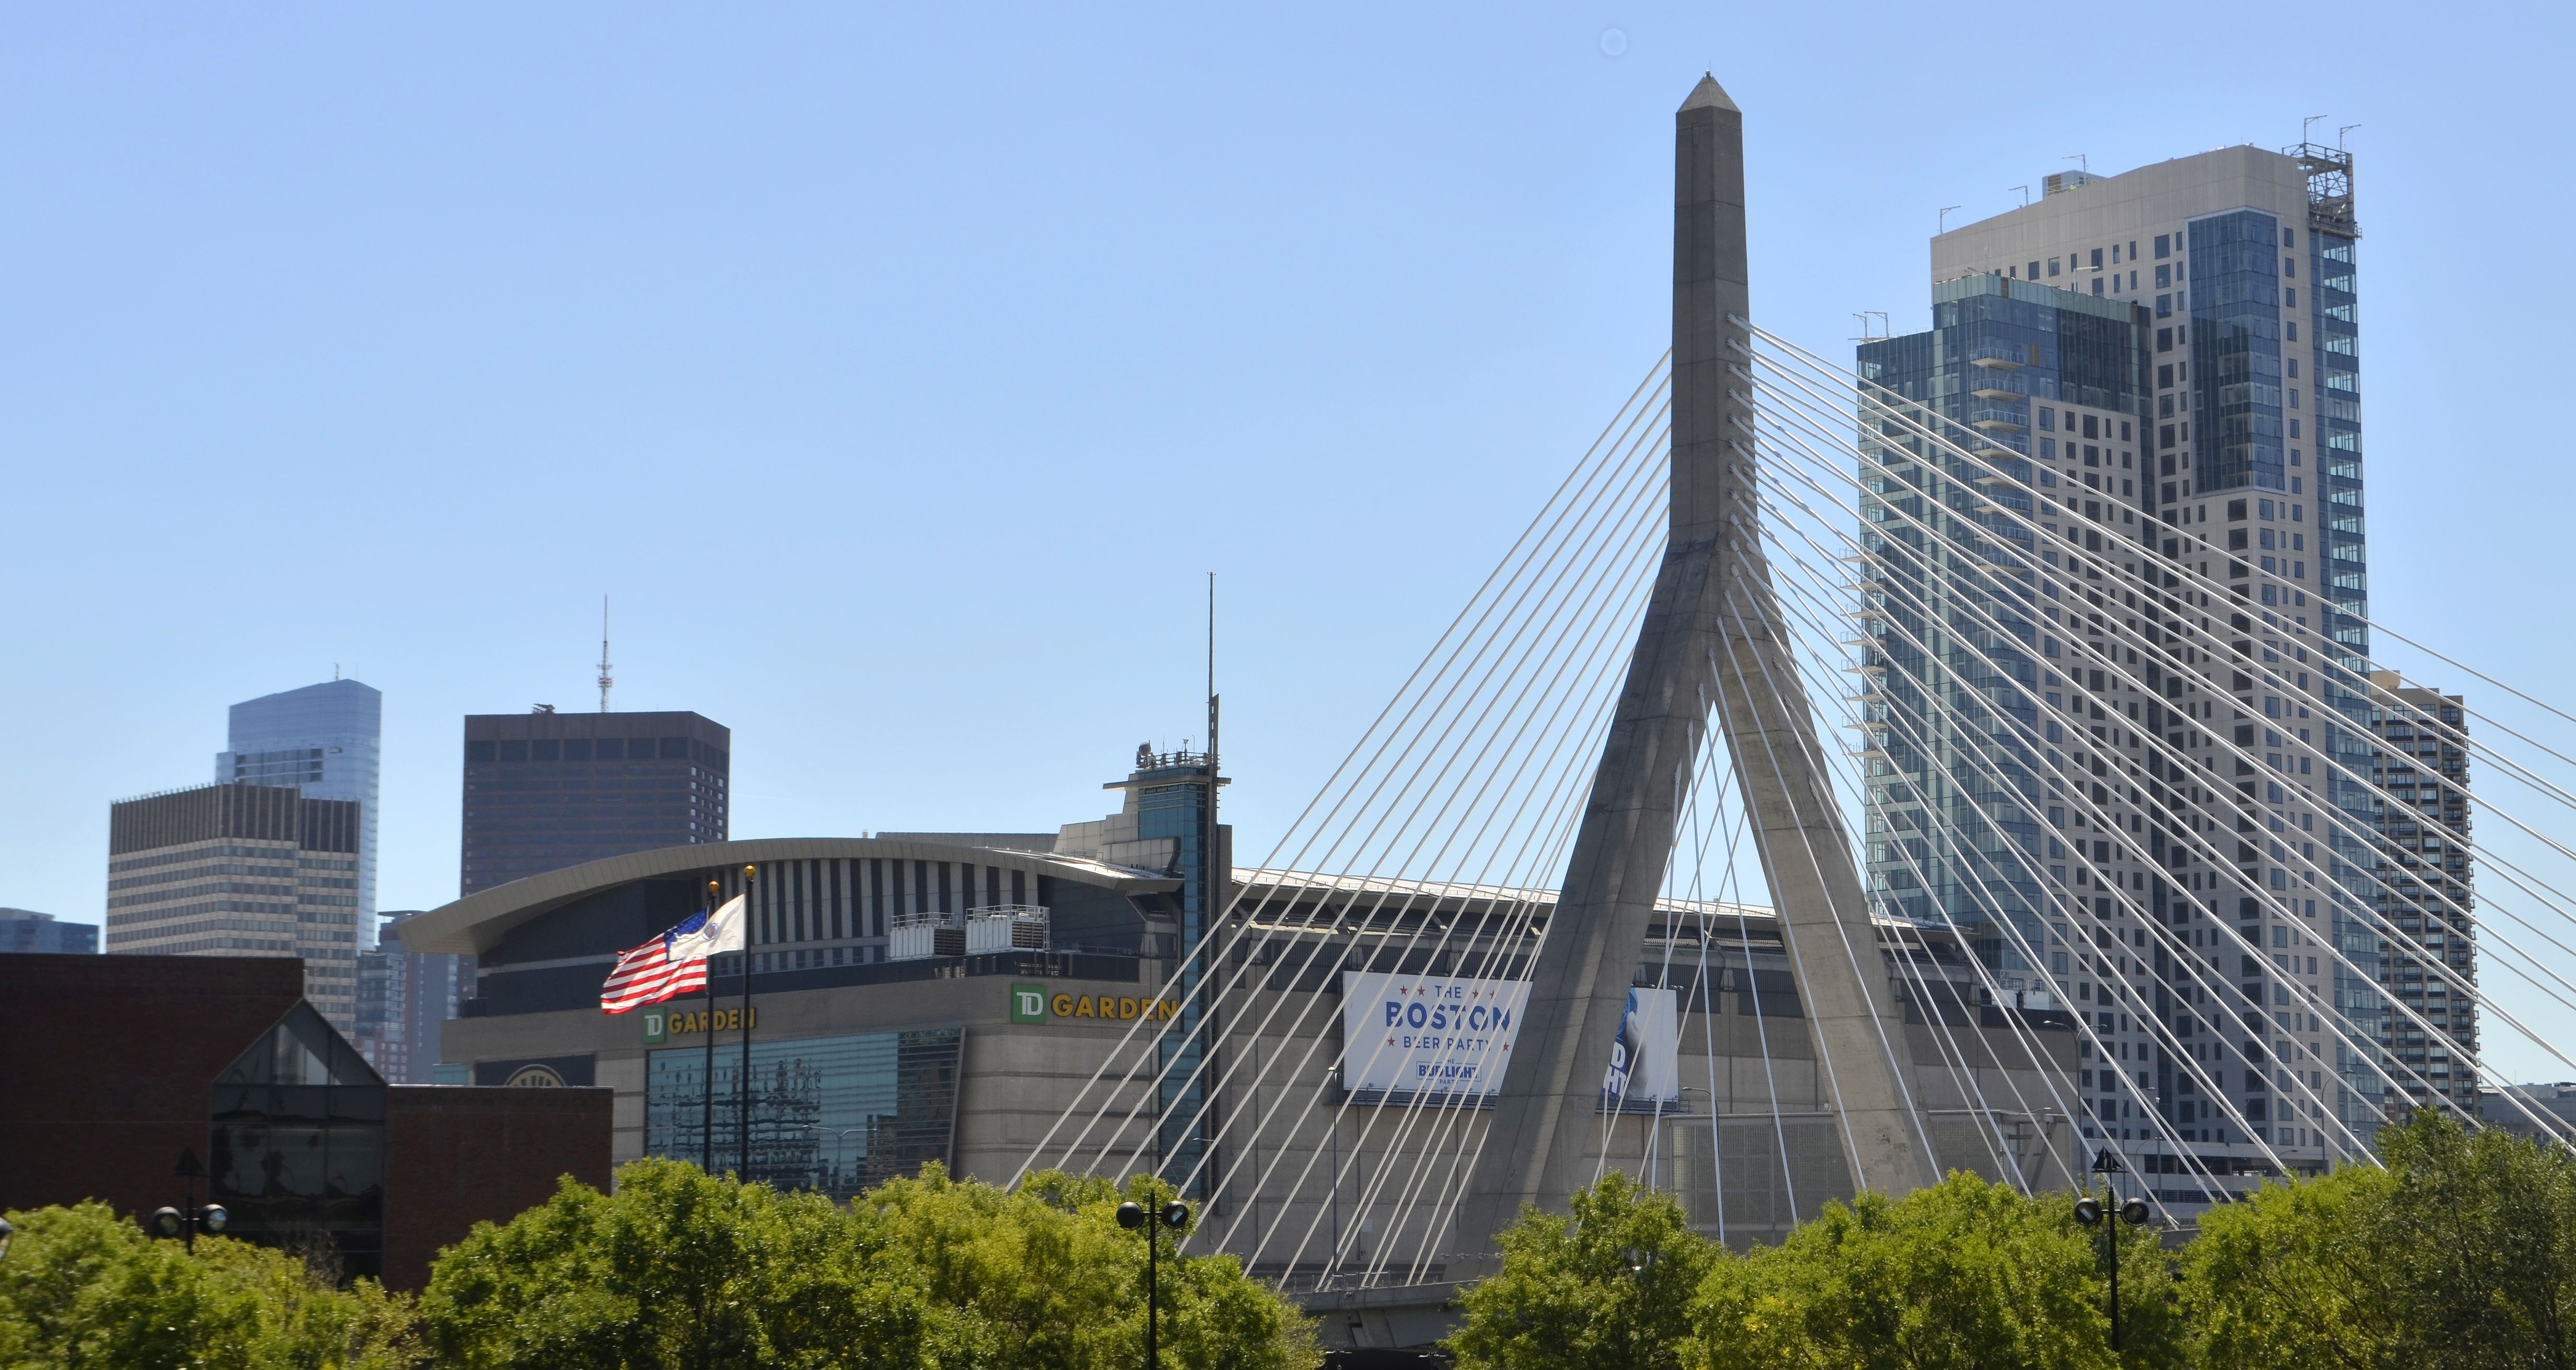 boston, america, usa, sehenswürdigkeiten, sights, travel, impressions, travelblog, travelblogger, blogger, lifestyleblog, top 10 sights, tips, story, adventure, skyline, view © http://ceyourgoals.com 2016